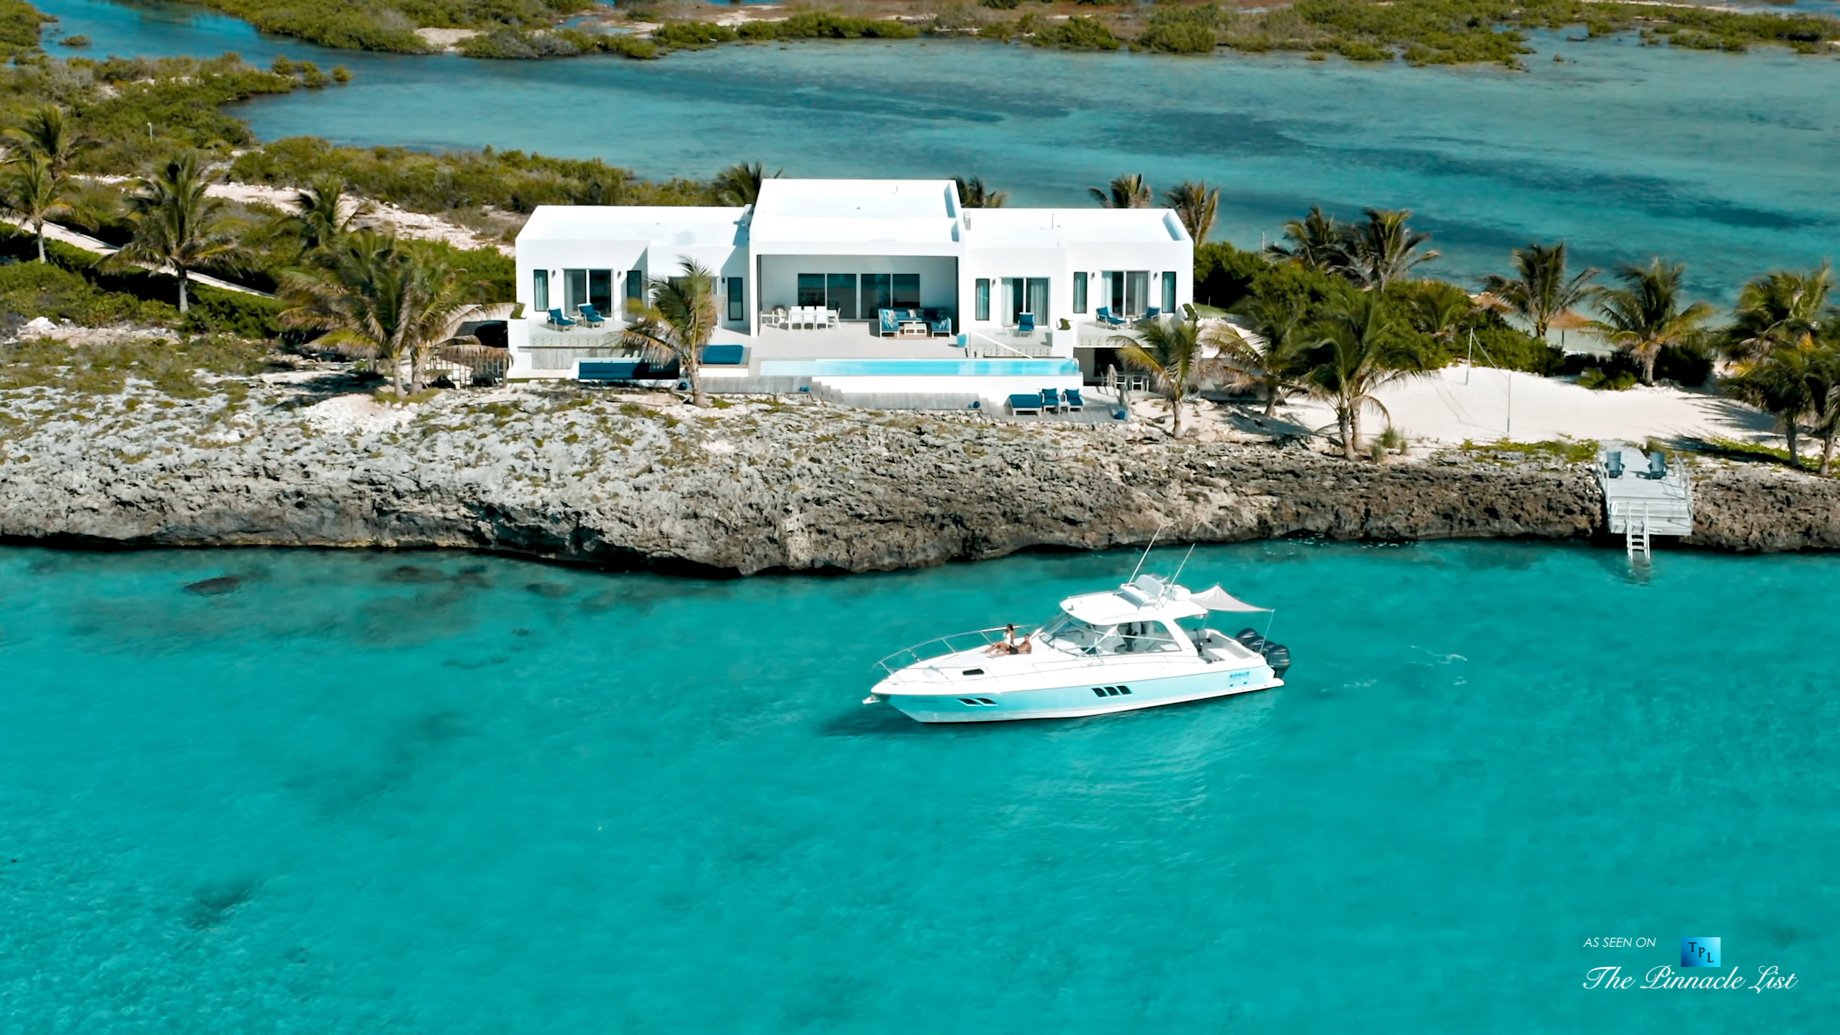 Tip of the Tail Villa - Providenciales, Turks and Caicos Islands